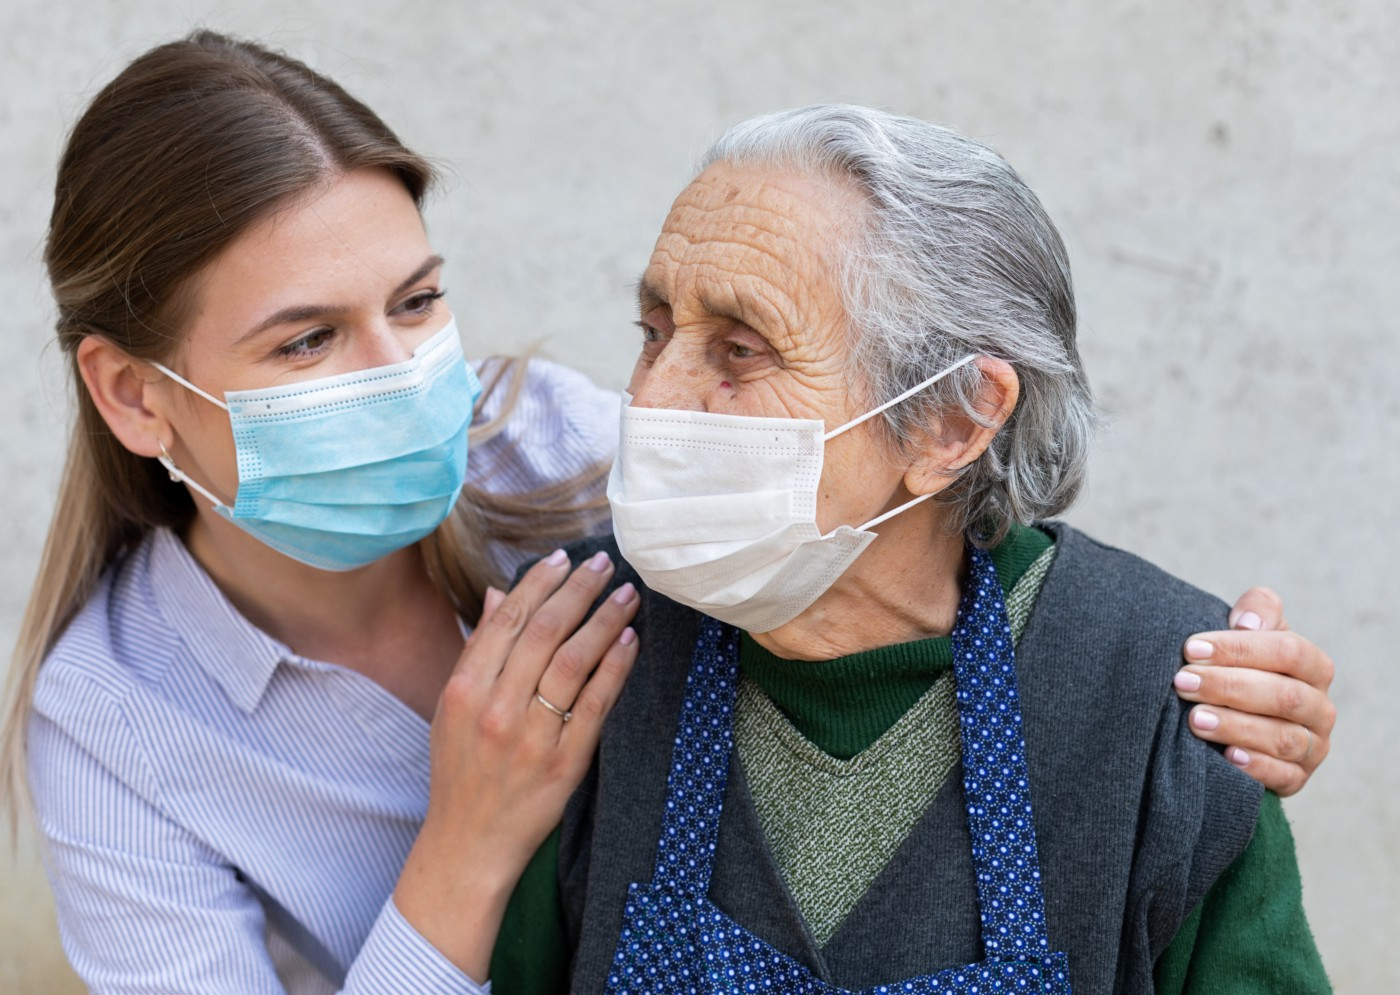 elderly and younger women standing side by side looking at each other